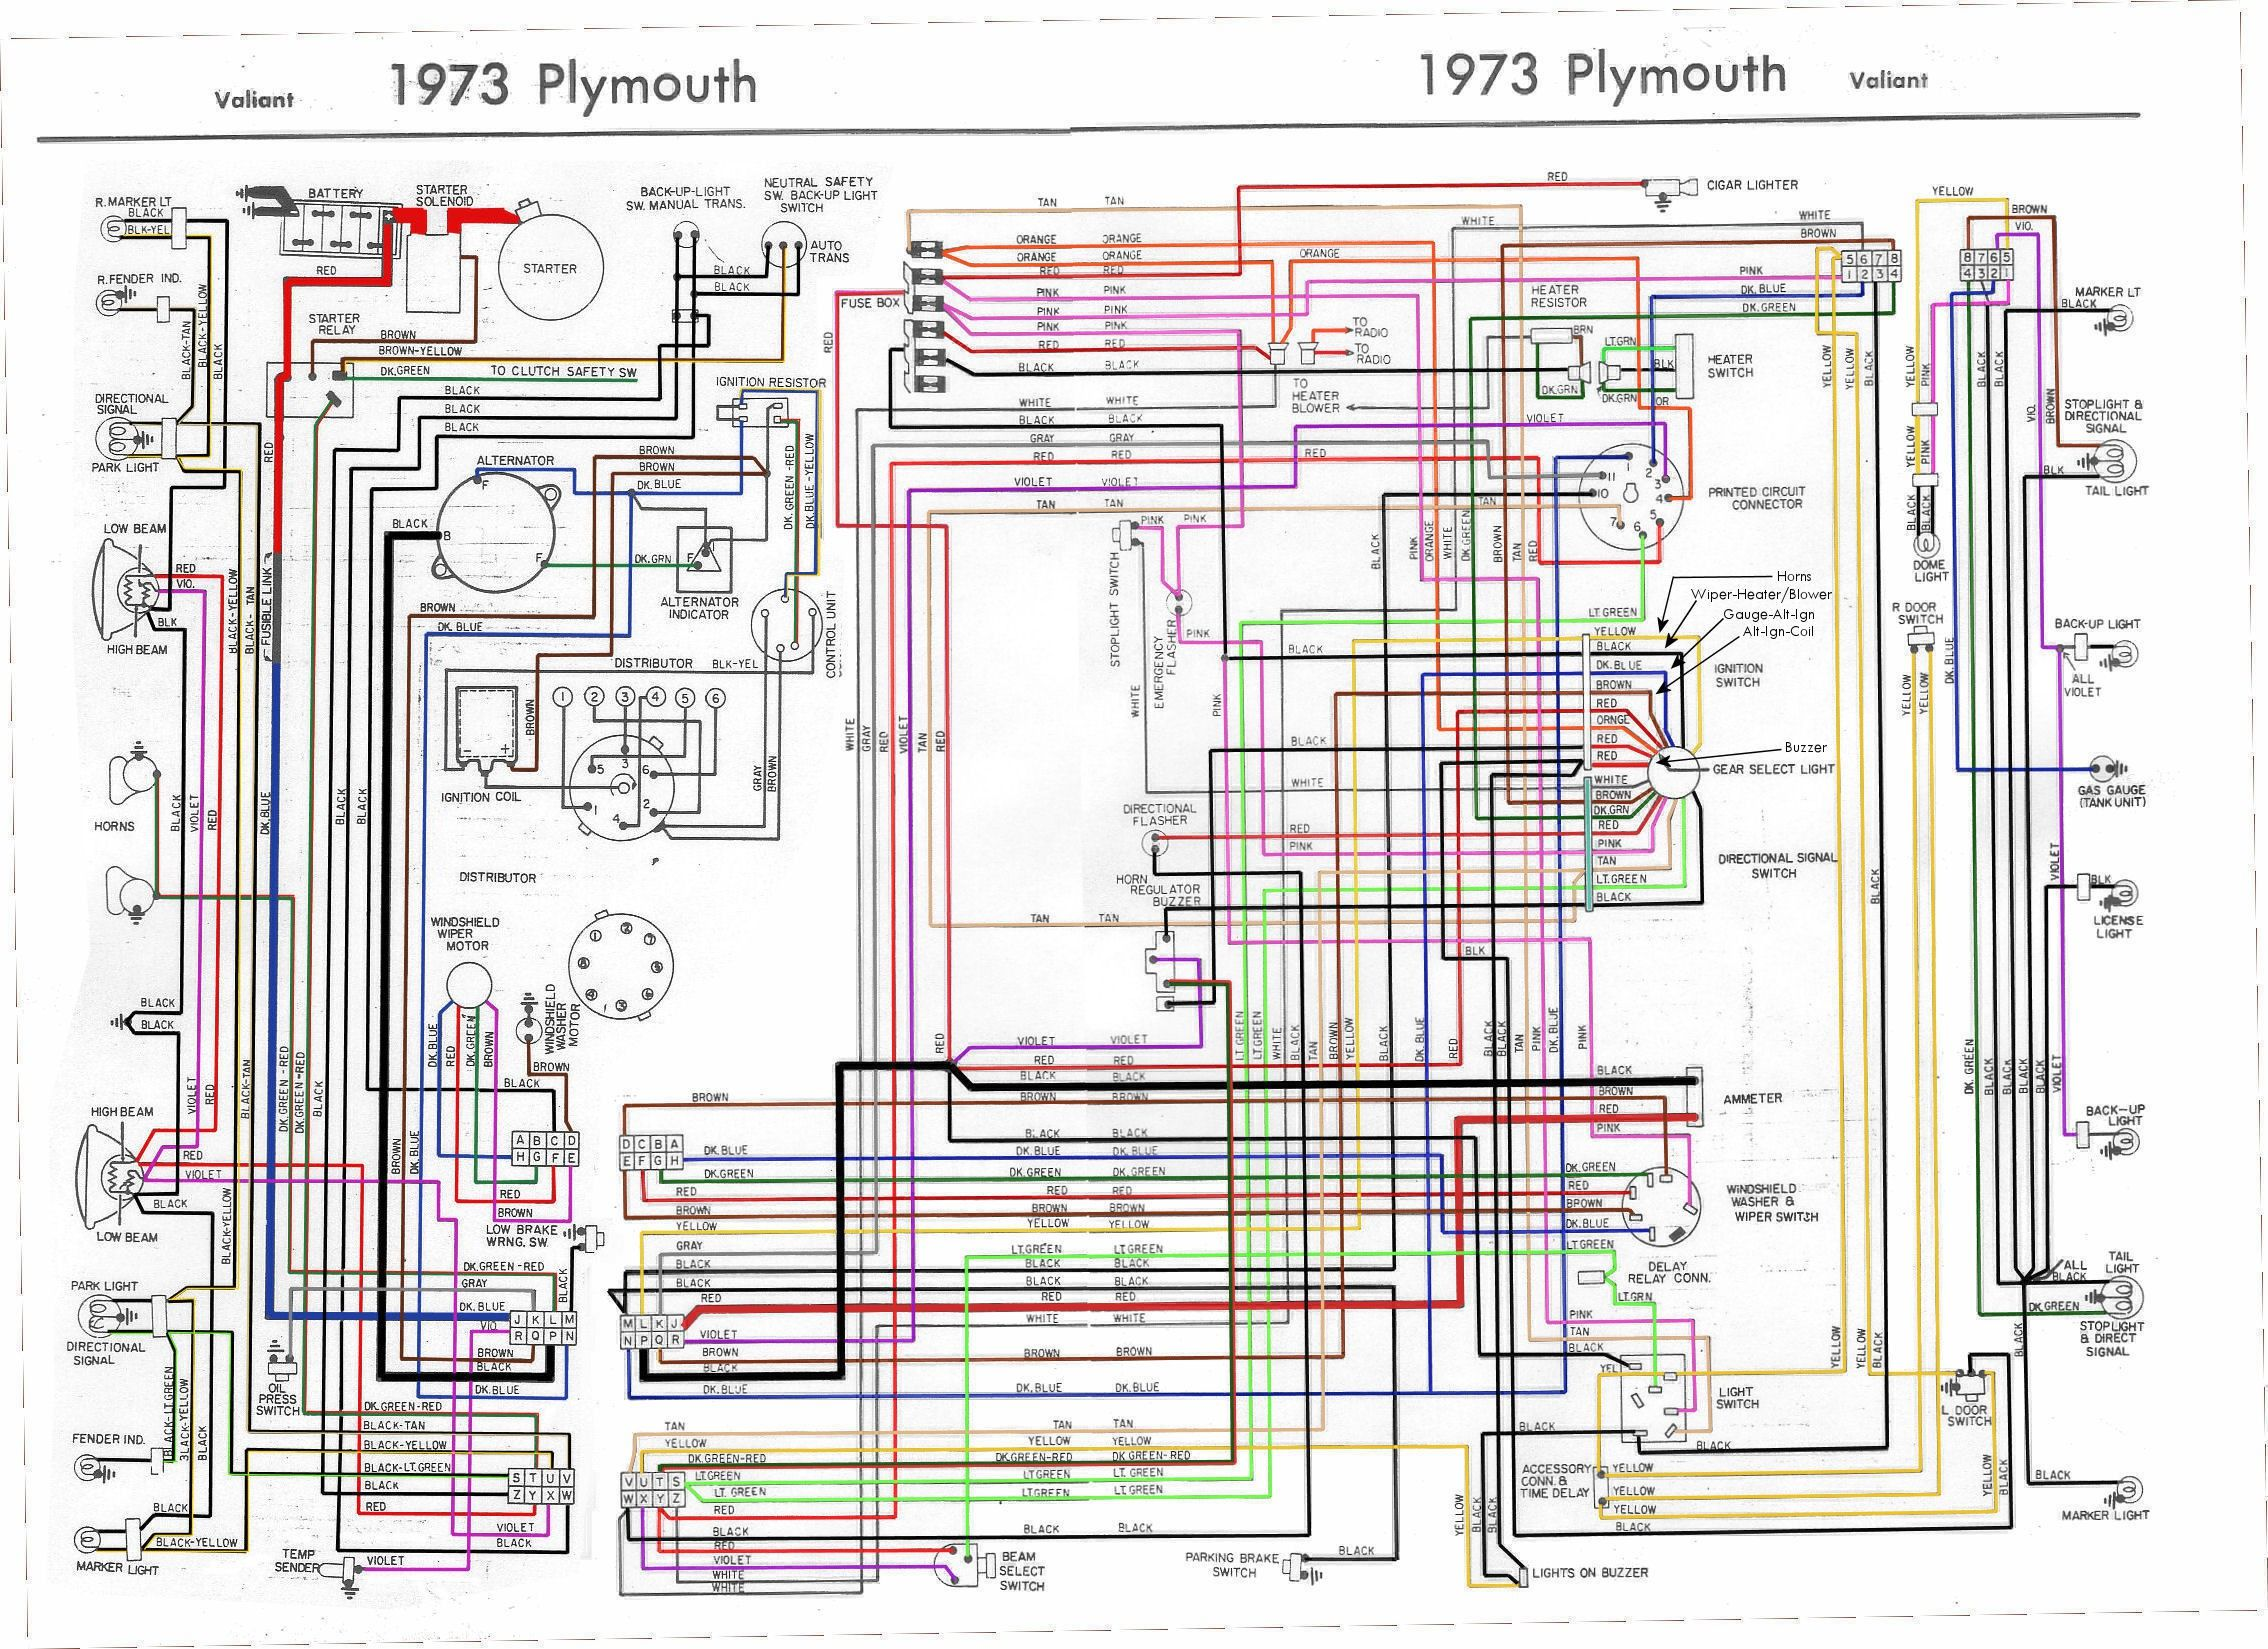 74 Plymouth Satellite Wiring Diagram Saturn Fuse Box Cover Removal Cusshman Tukune Jeanjaures37 Fr